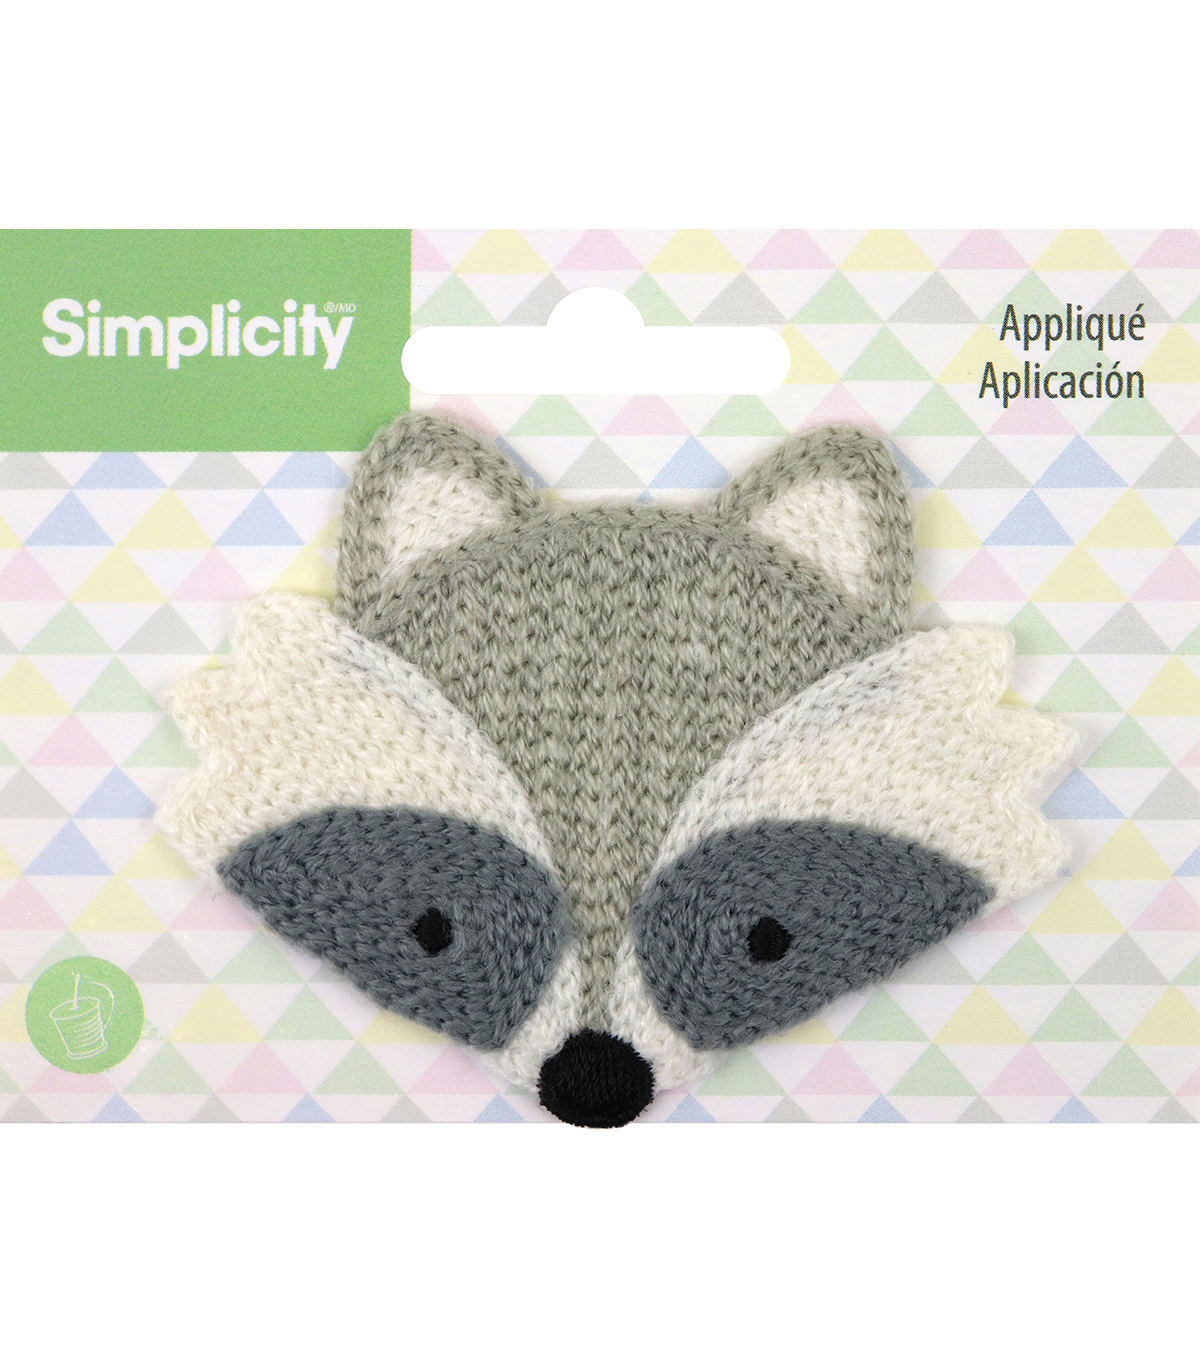 Simplicity Raccoon Baby Sew-on Applique-Gray & Black